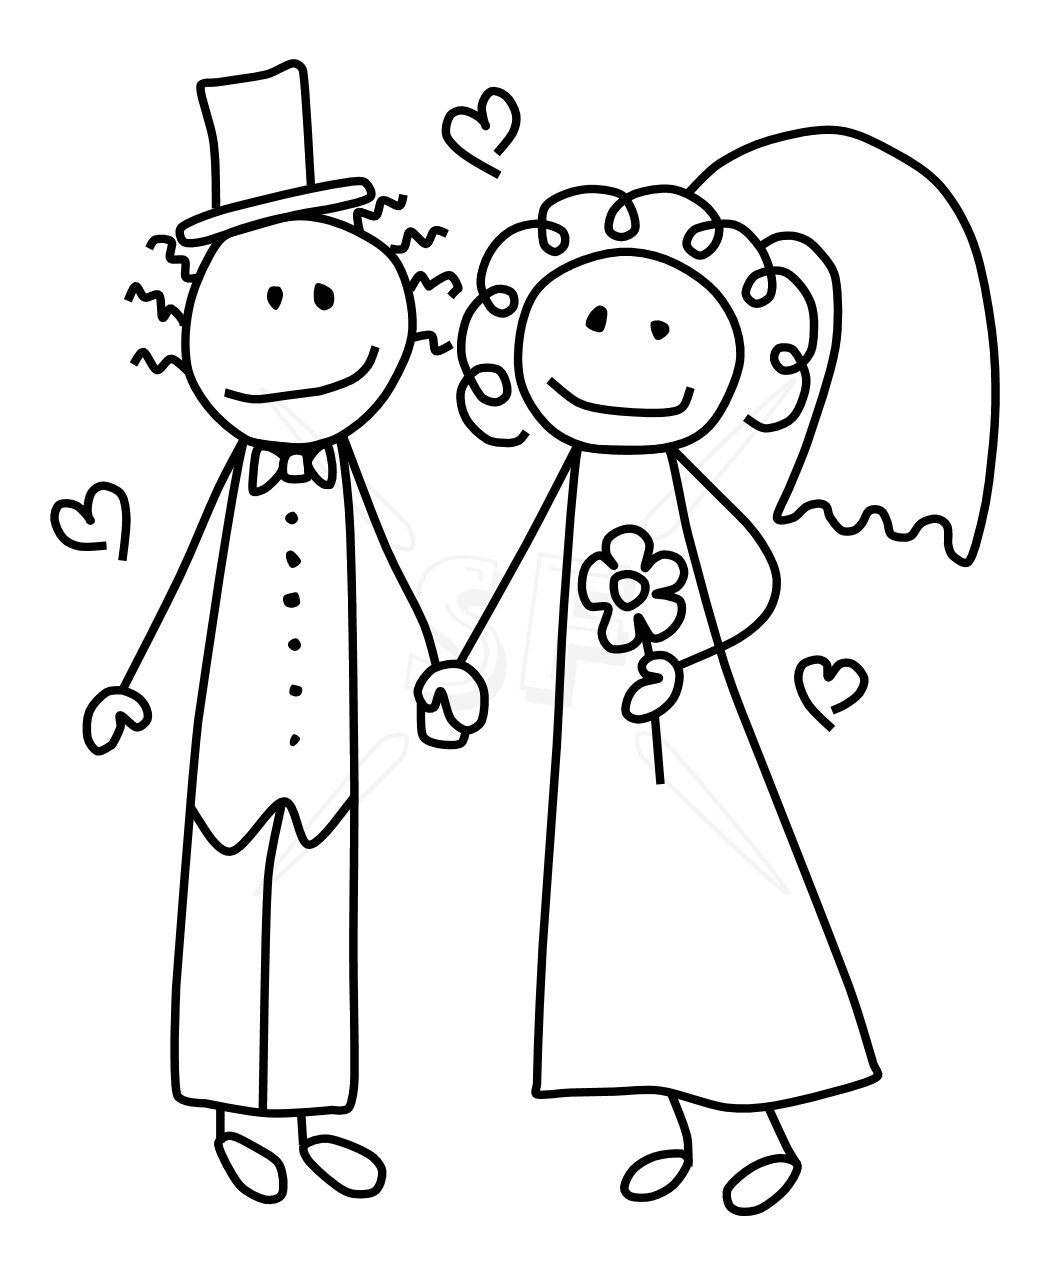 Wedding clipart outline Clipart Stitching And this Pin